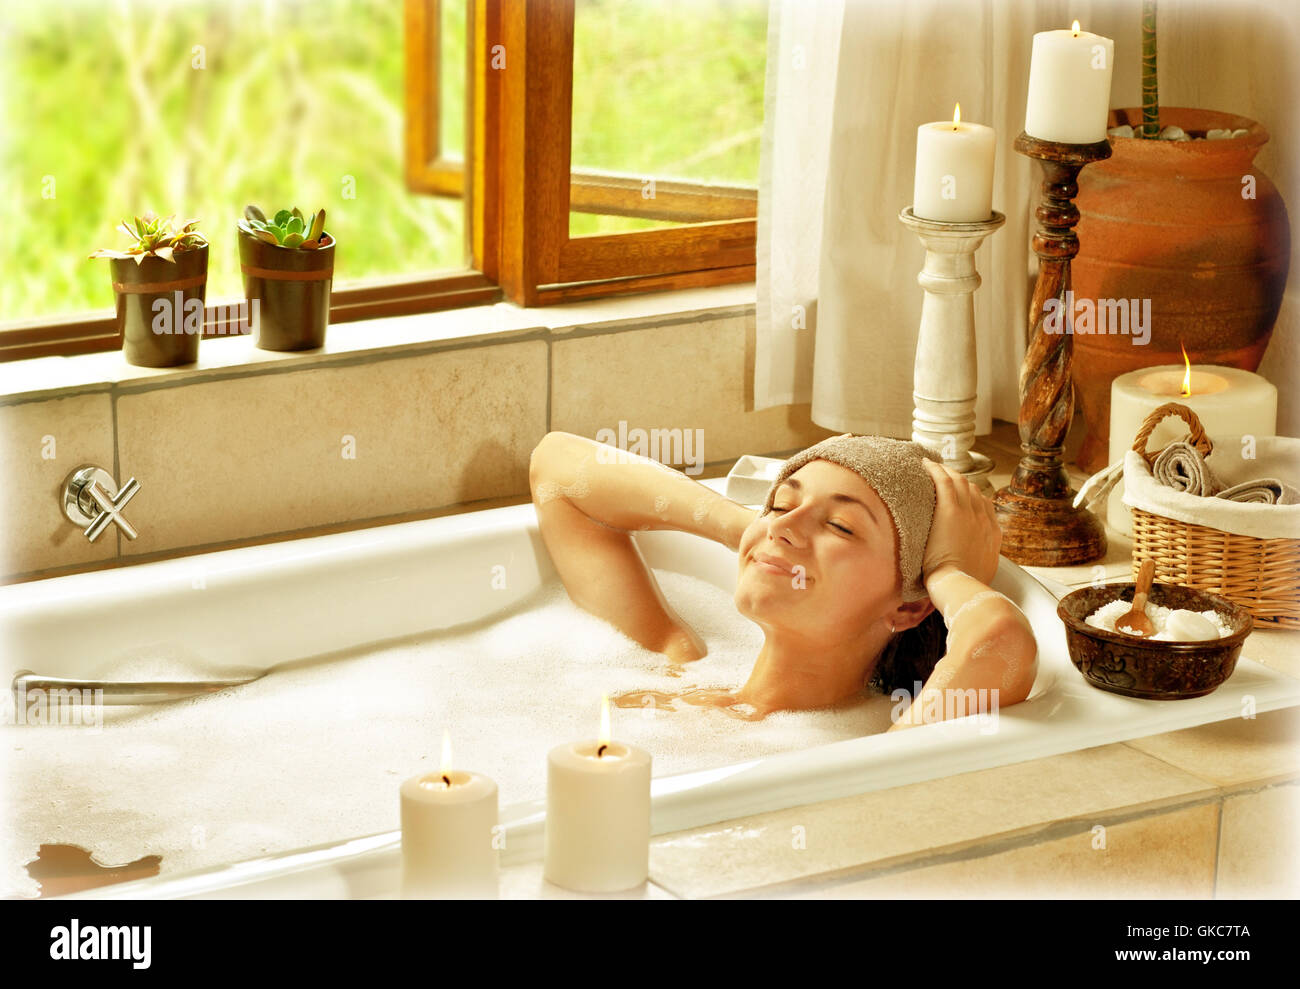 How to Relax With a Hot Bath forecasting